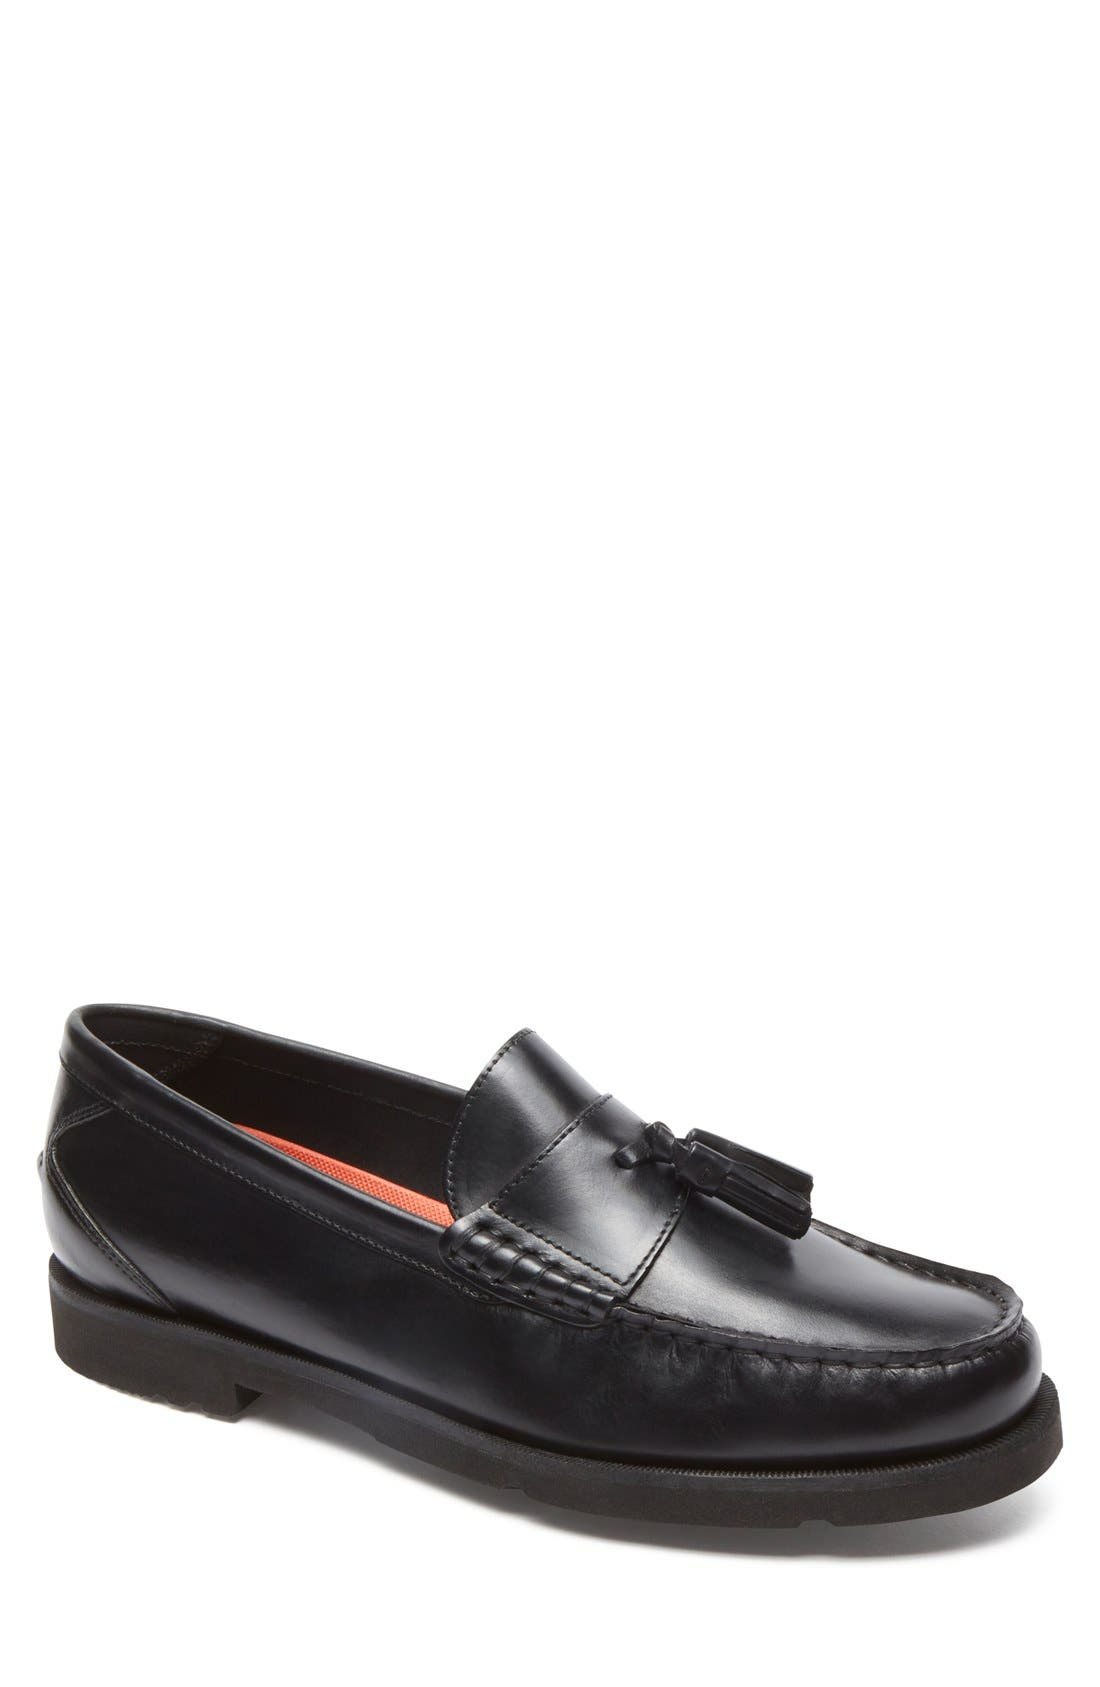 ROCKPORT Modern Prep Tassel Loafer, Main, color, 001